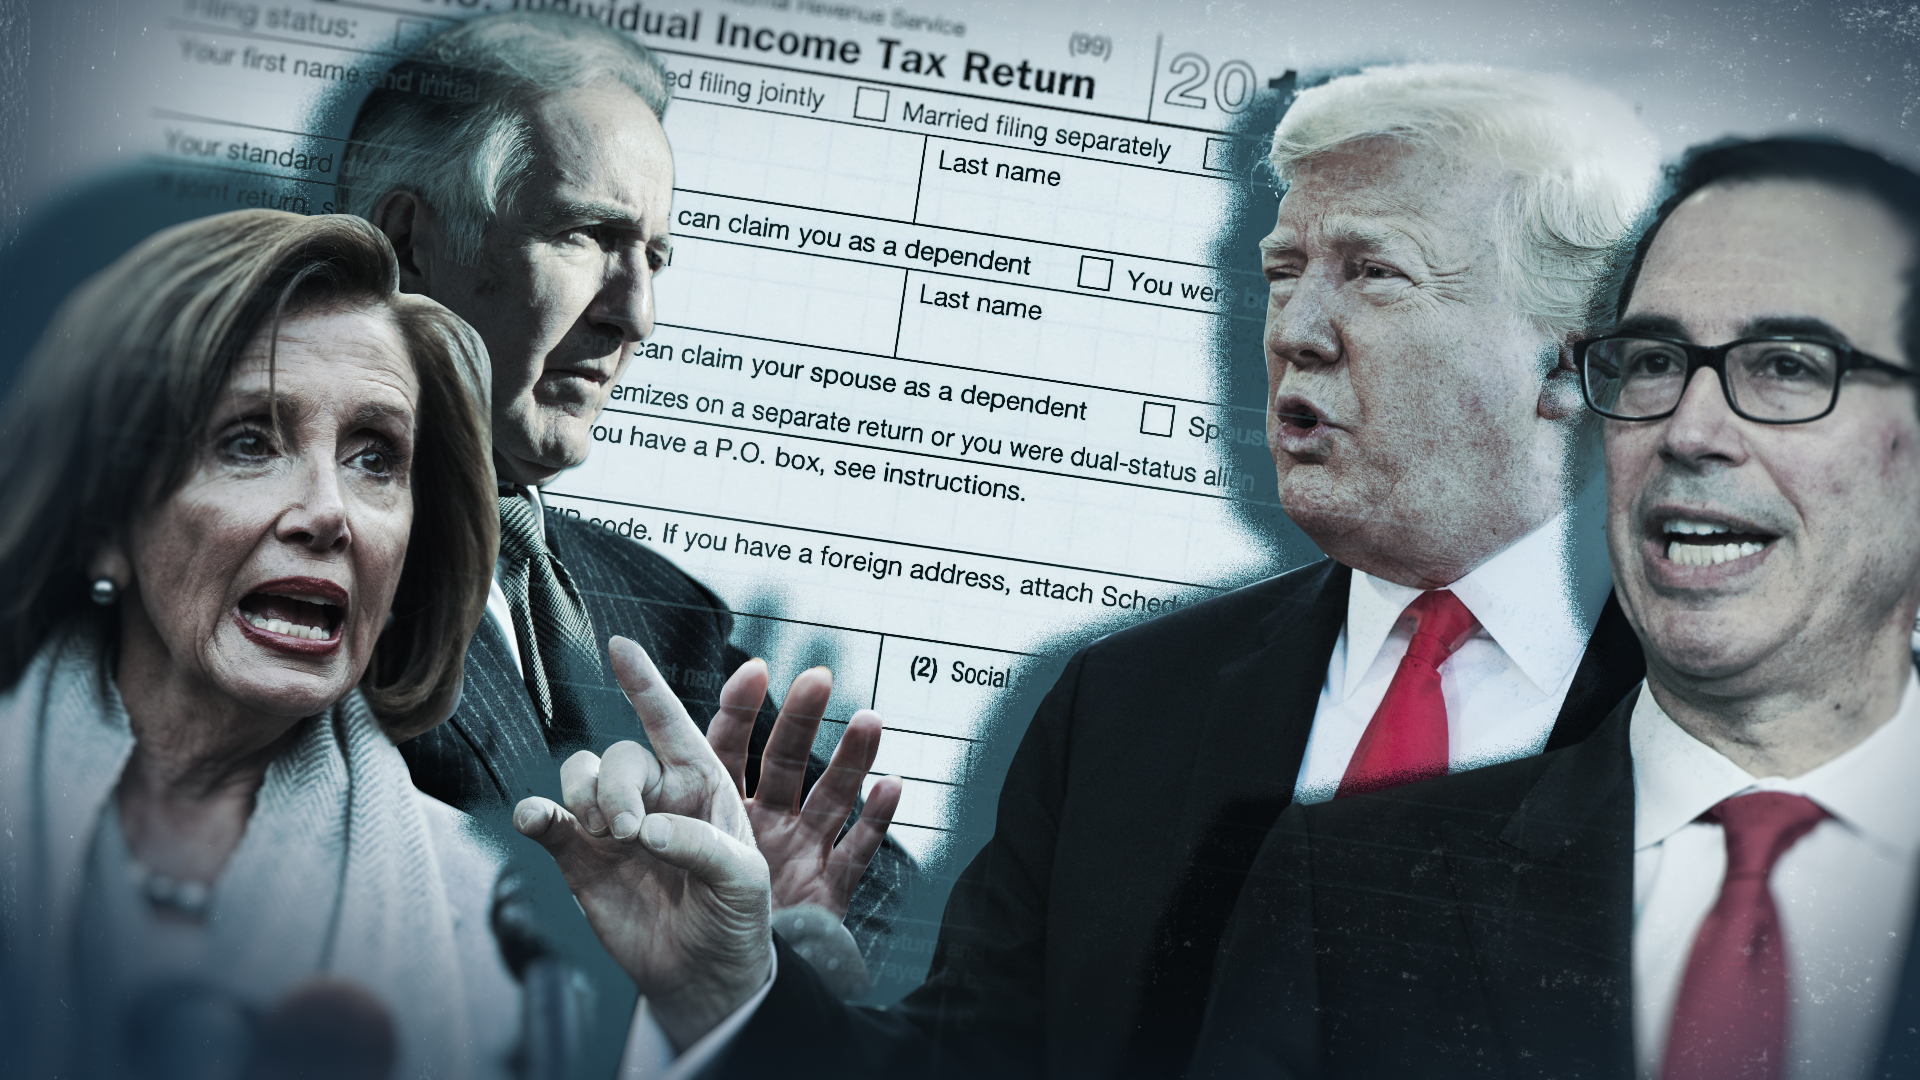 'It's going to be tough': House Democrats appear less likely to get Trump's tax returns before 2020 election